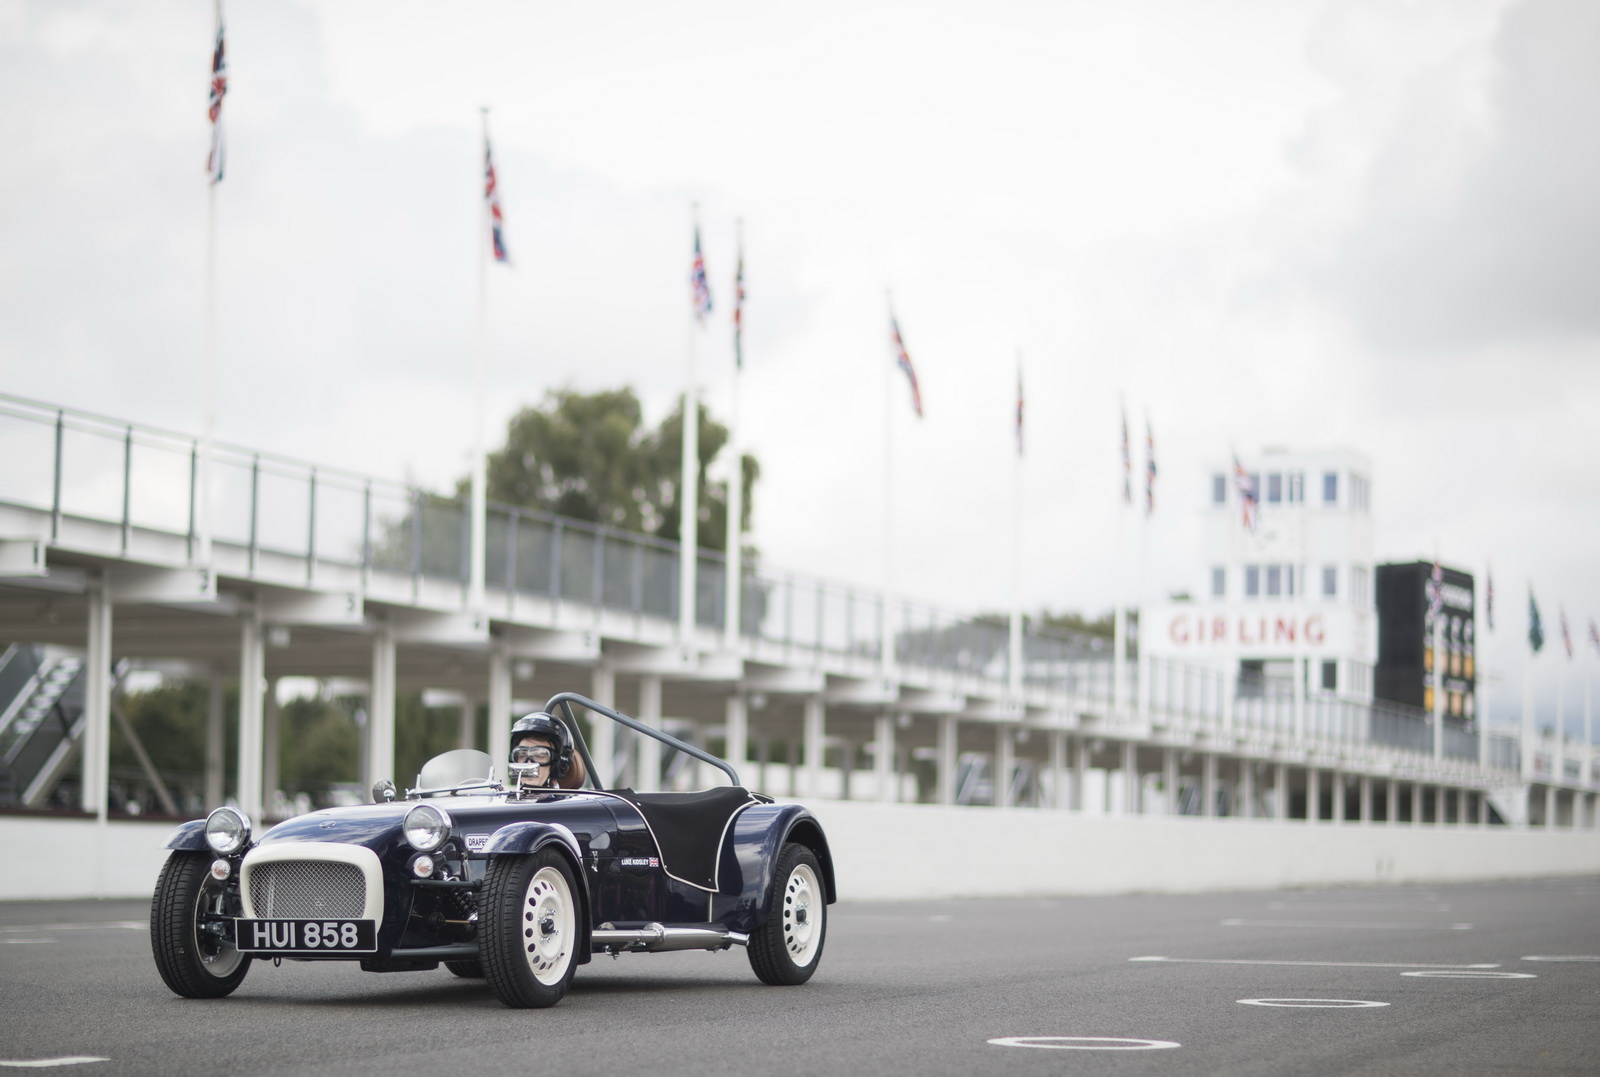 Caterham Super Sprint 2017 carsGoodwood Motor Racing Circuit8th August 2017Photos - Jed Leicester07967 091226